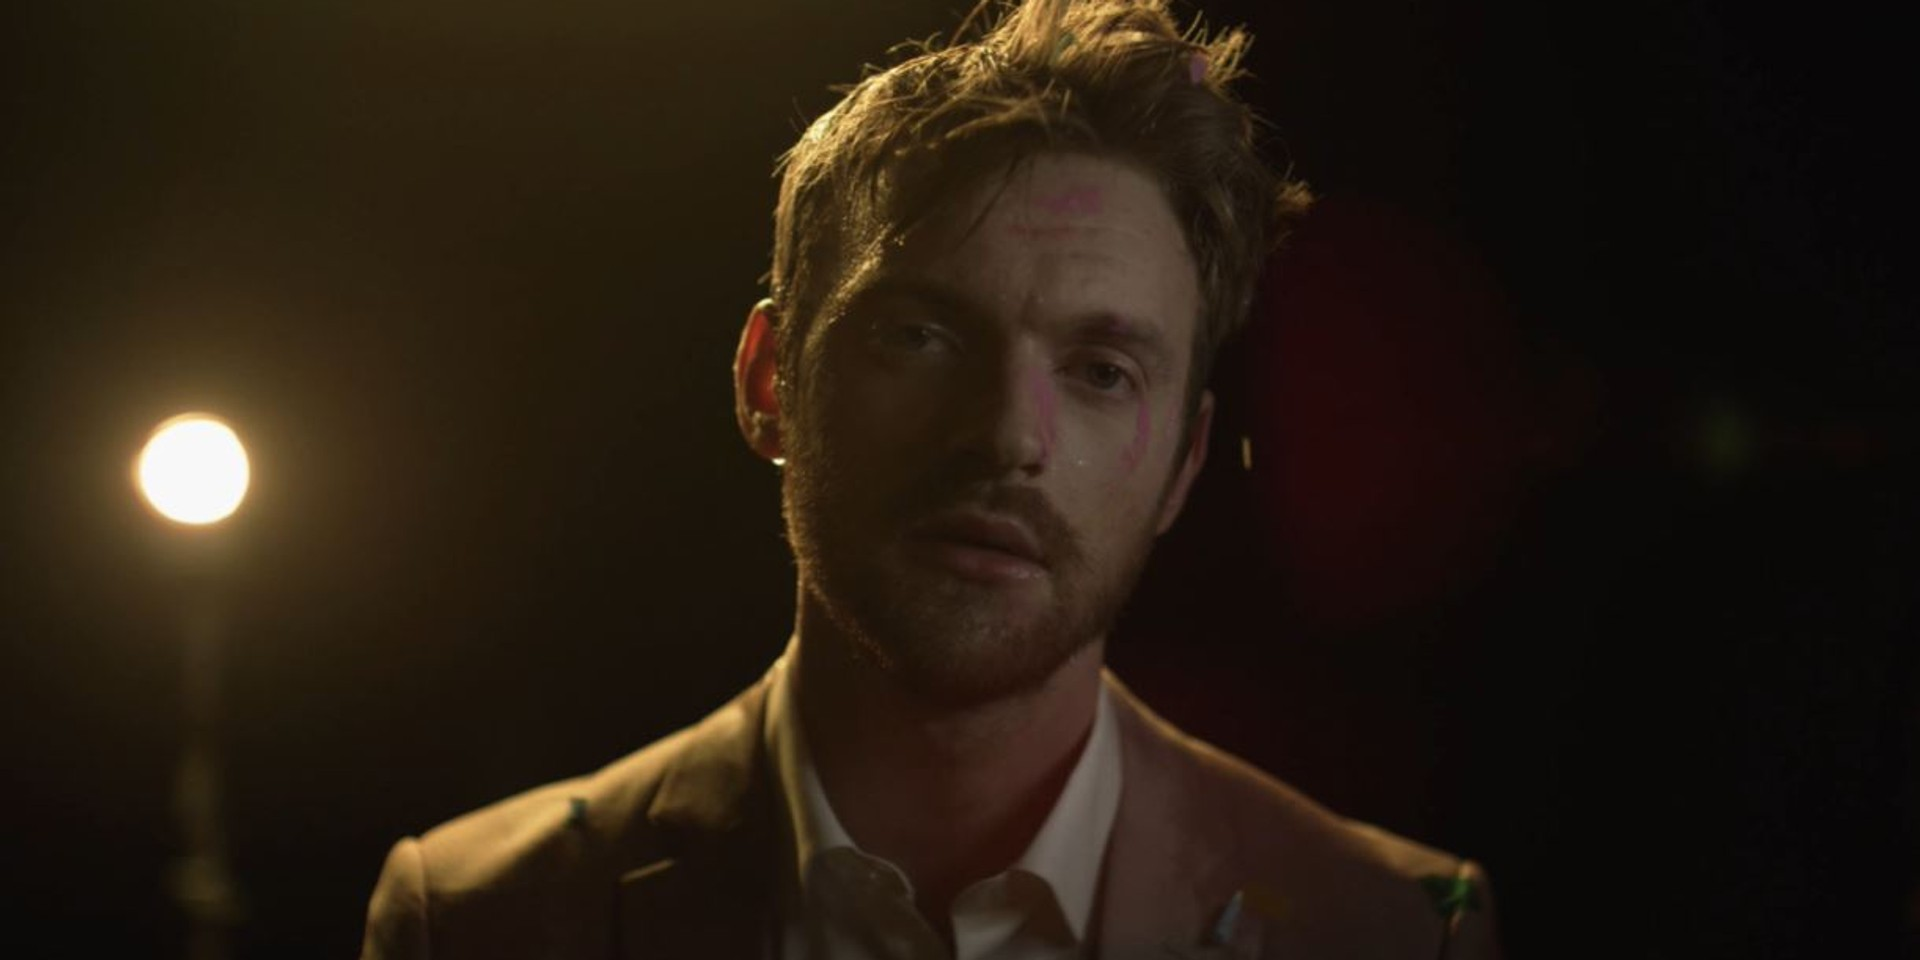 """Dedicated to all who have had to endure this year"": FINNEAS returns with powerful single 'What They'll Say About Us' – watch"